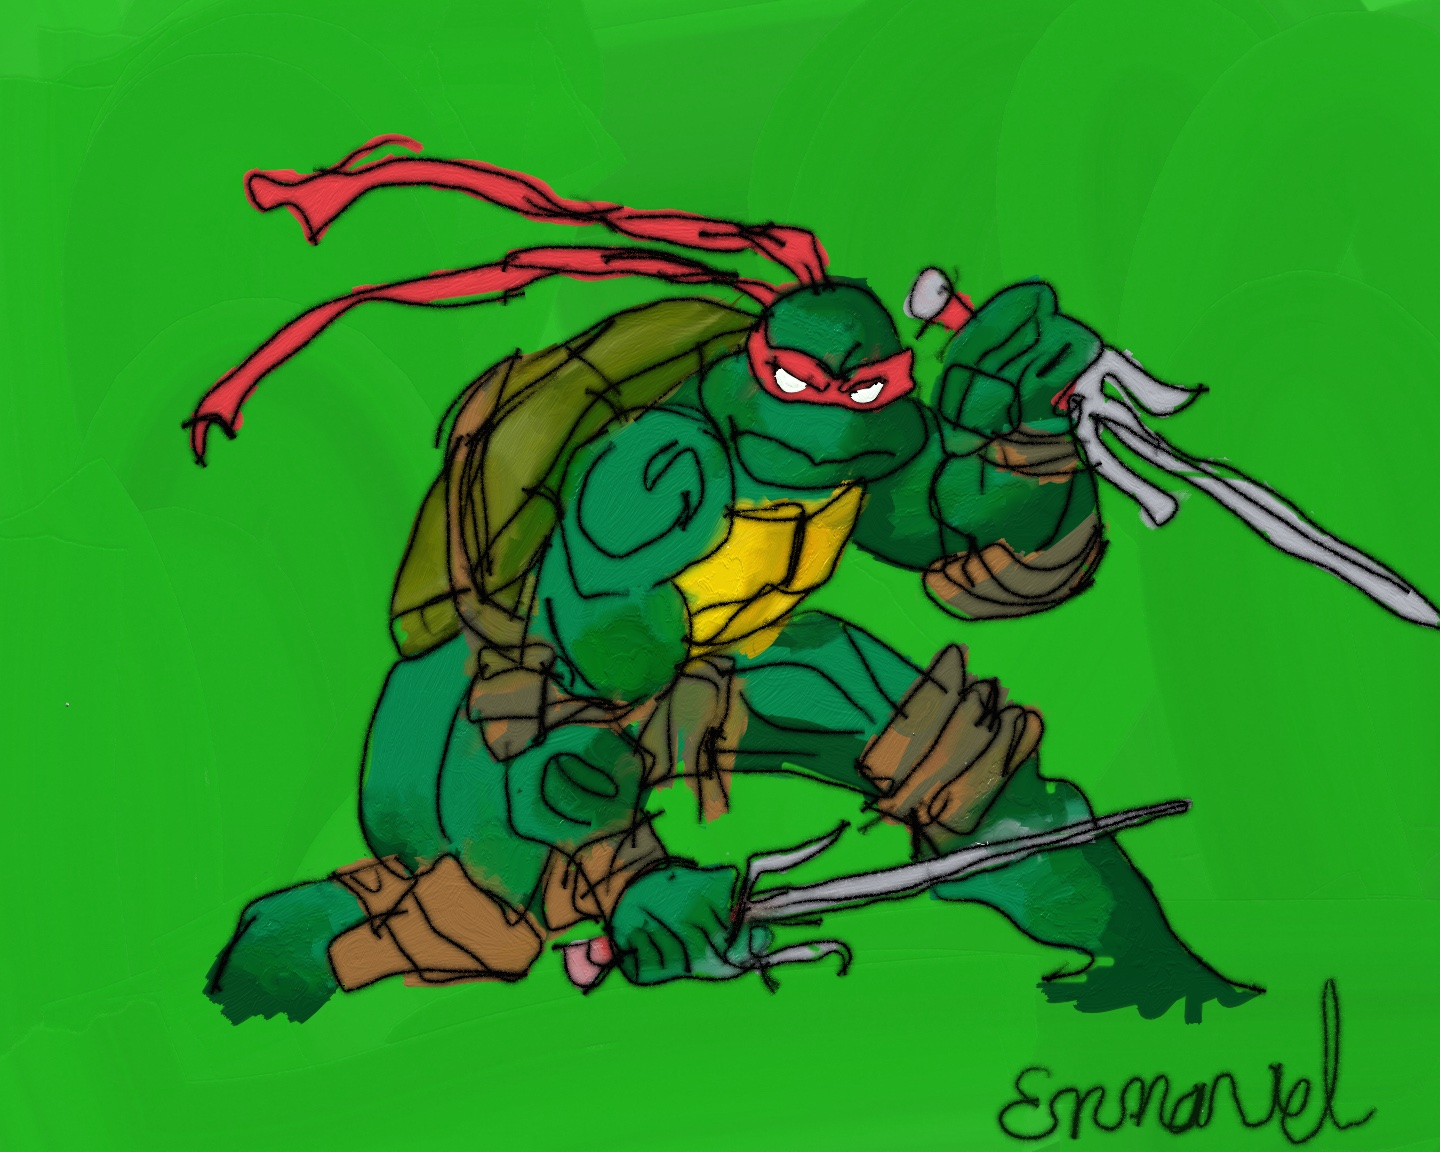 Image of a painting of a ninja turtle.